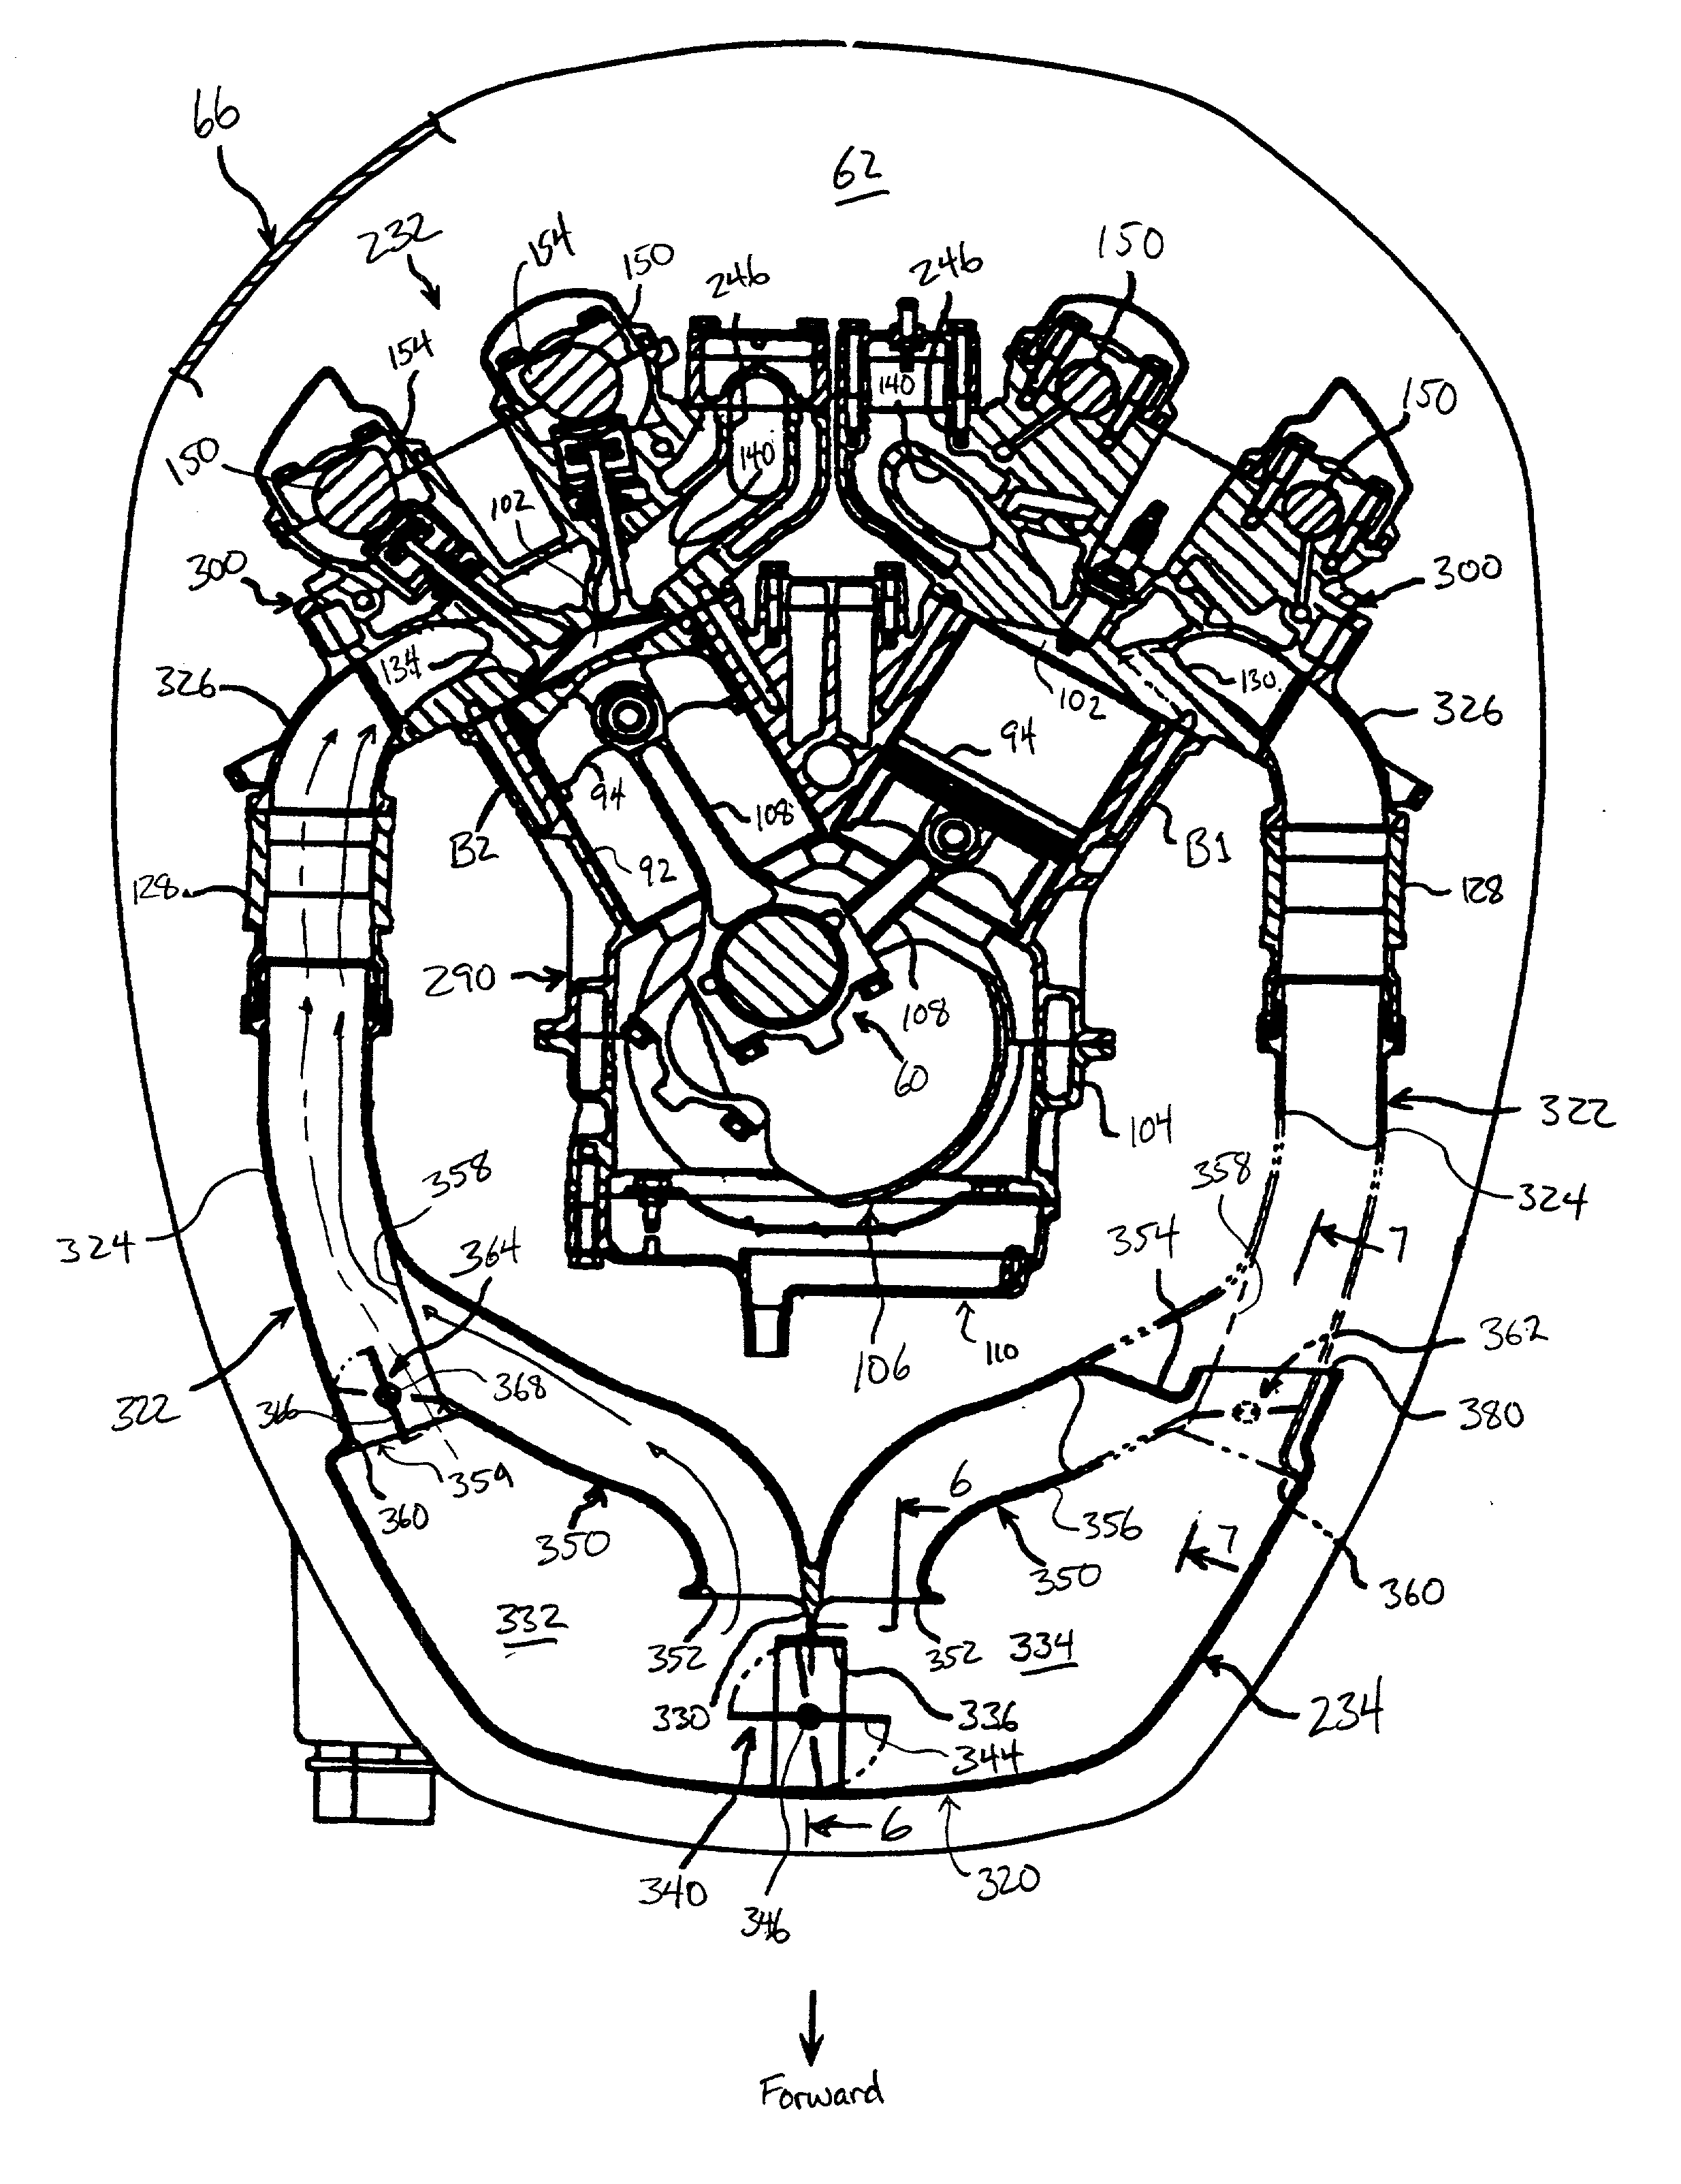 Bmw e36 air intake diagram also showassembly together with ski doo engine diagram additionally us20020117138 likewise